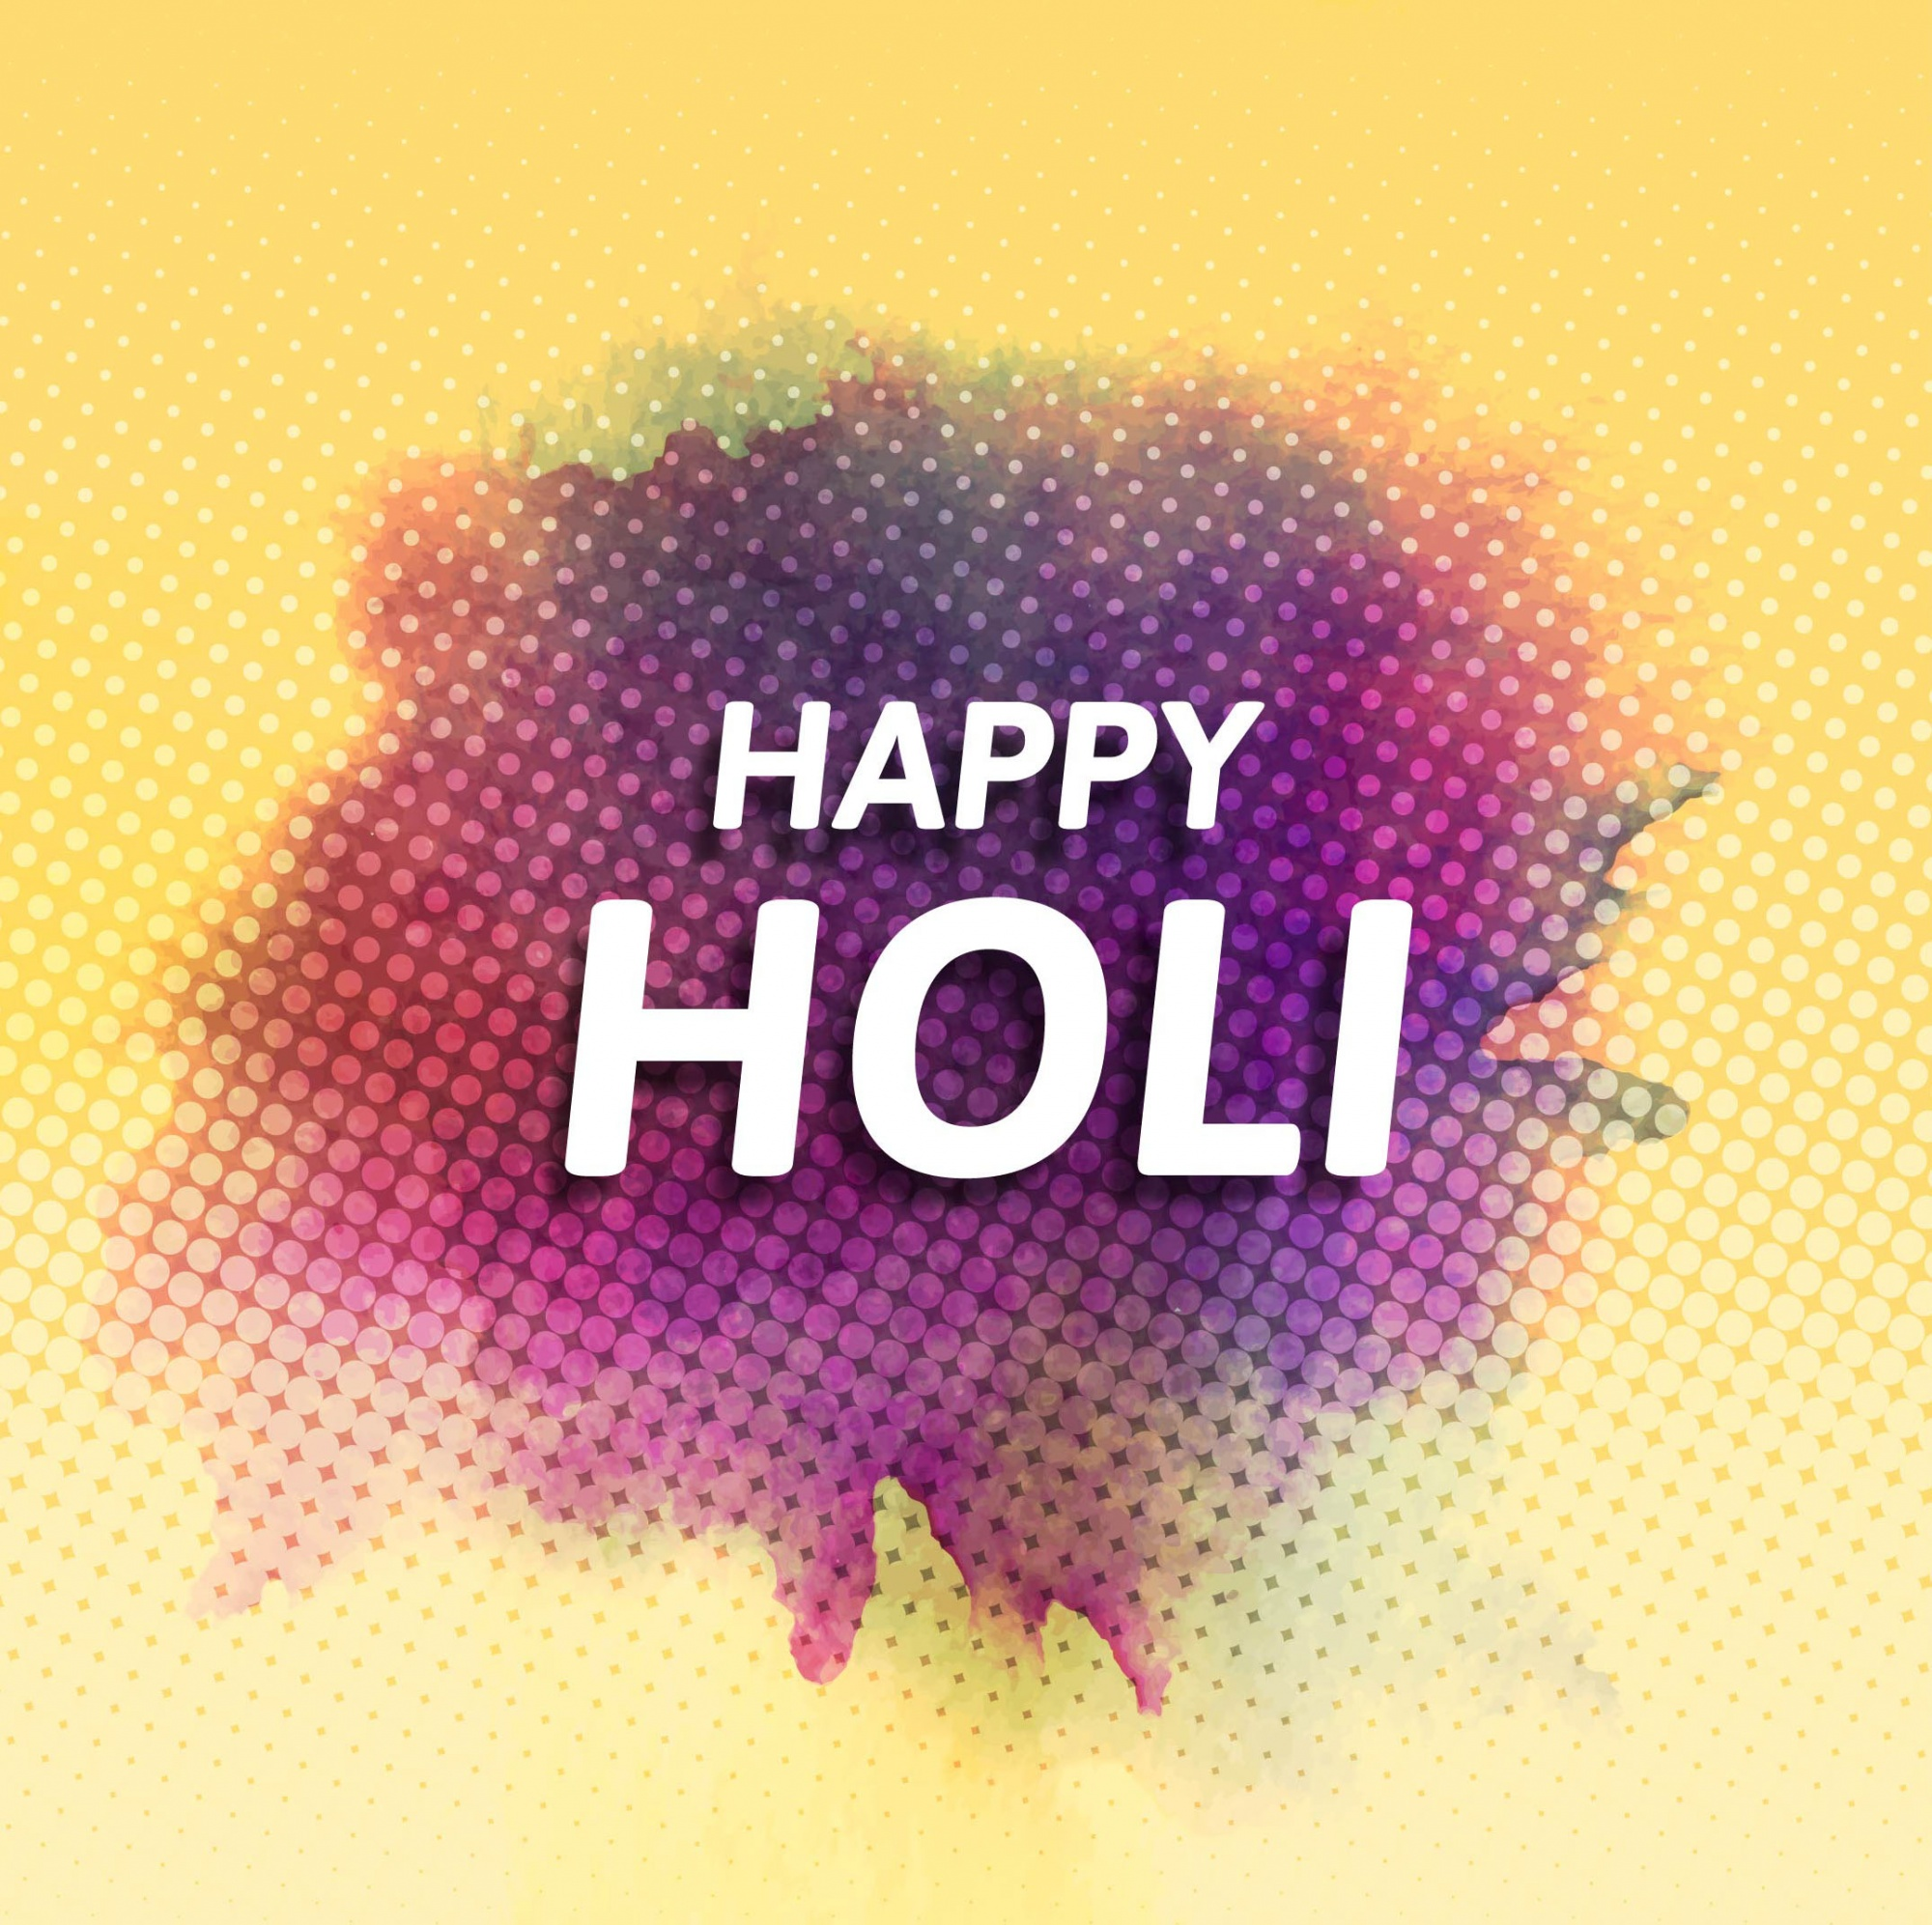 Dotted background with watercolors for holi festival